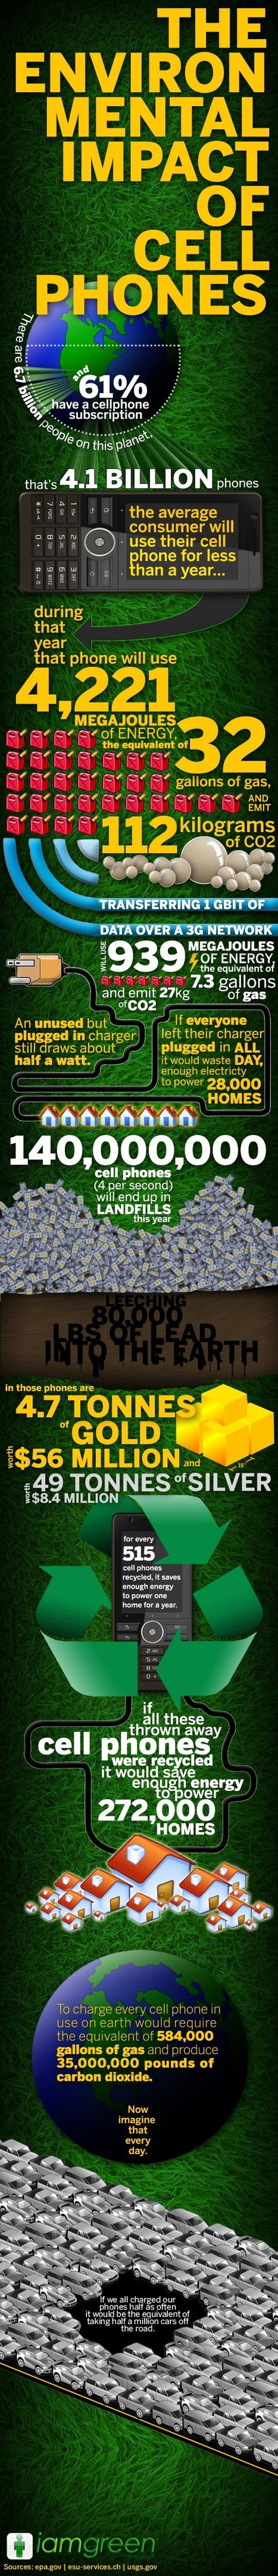 The Environmental Impact Of Cell Phones | Visual.ly | Technologies numériques & Education | Scoop.it